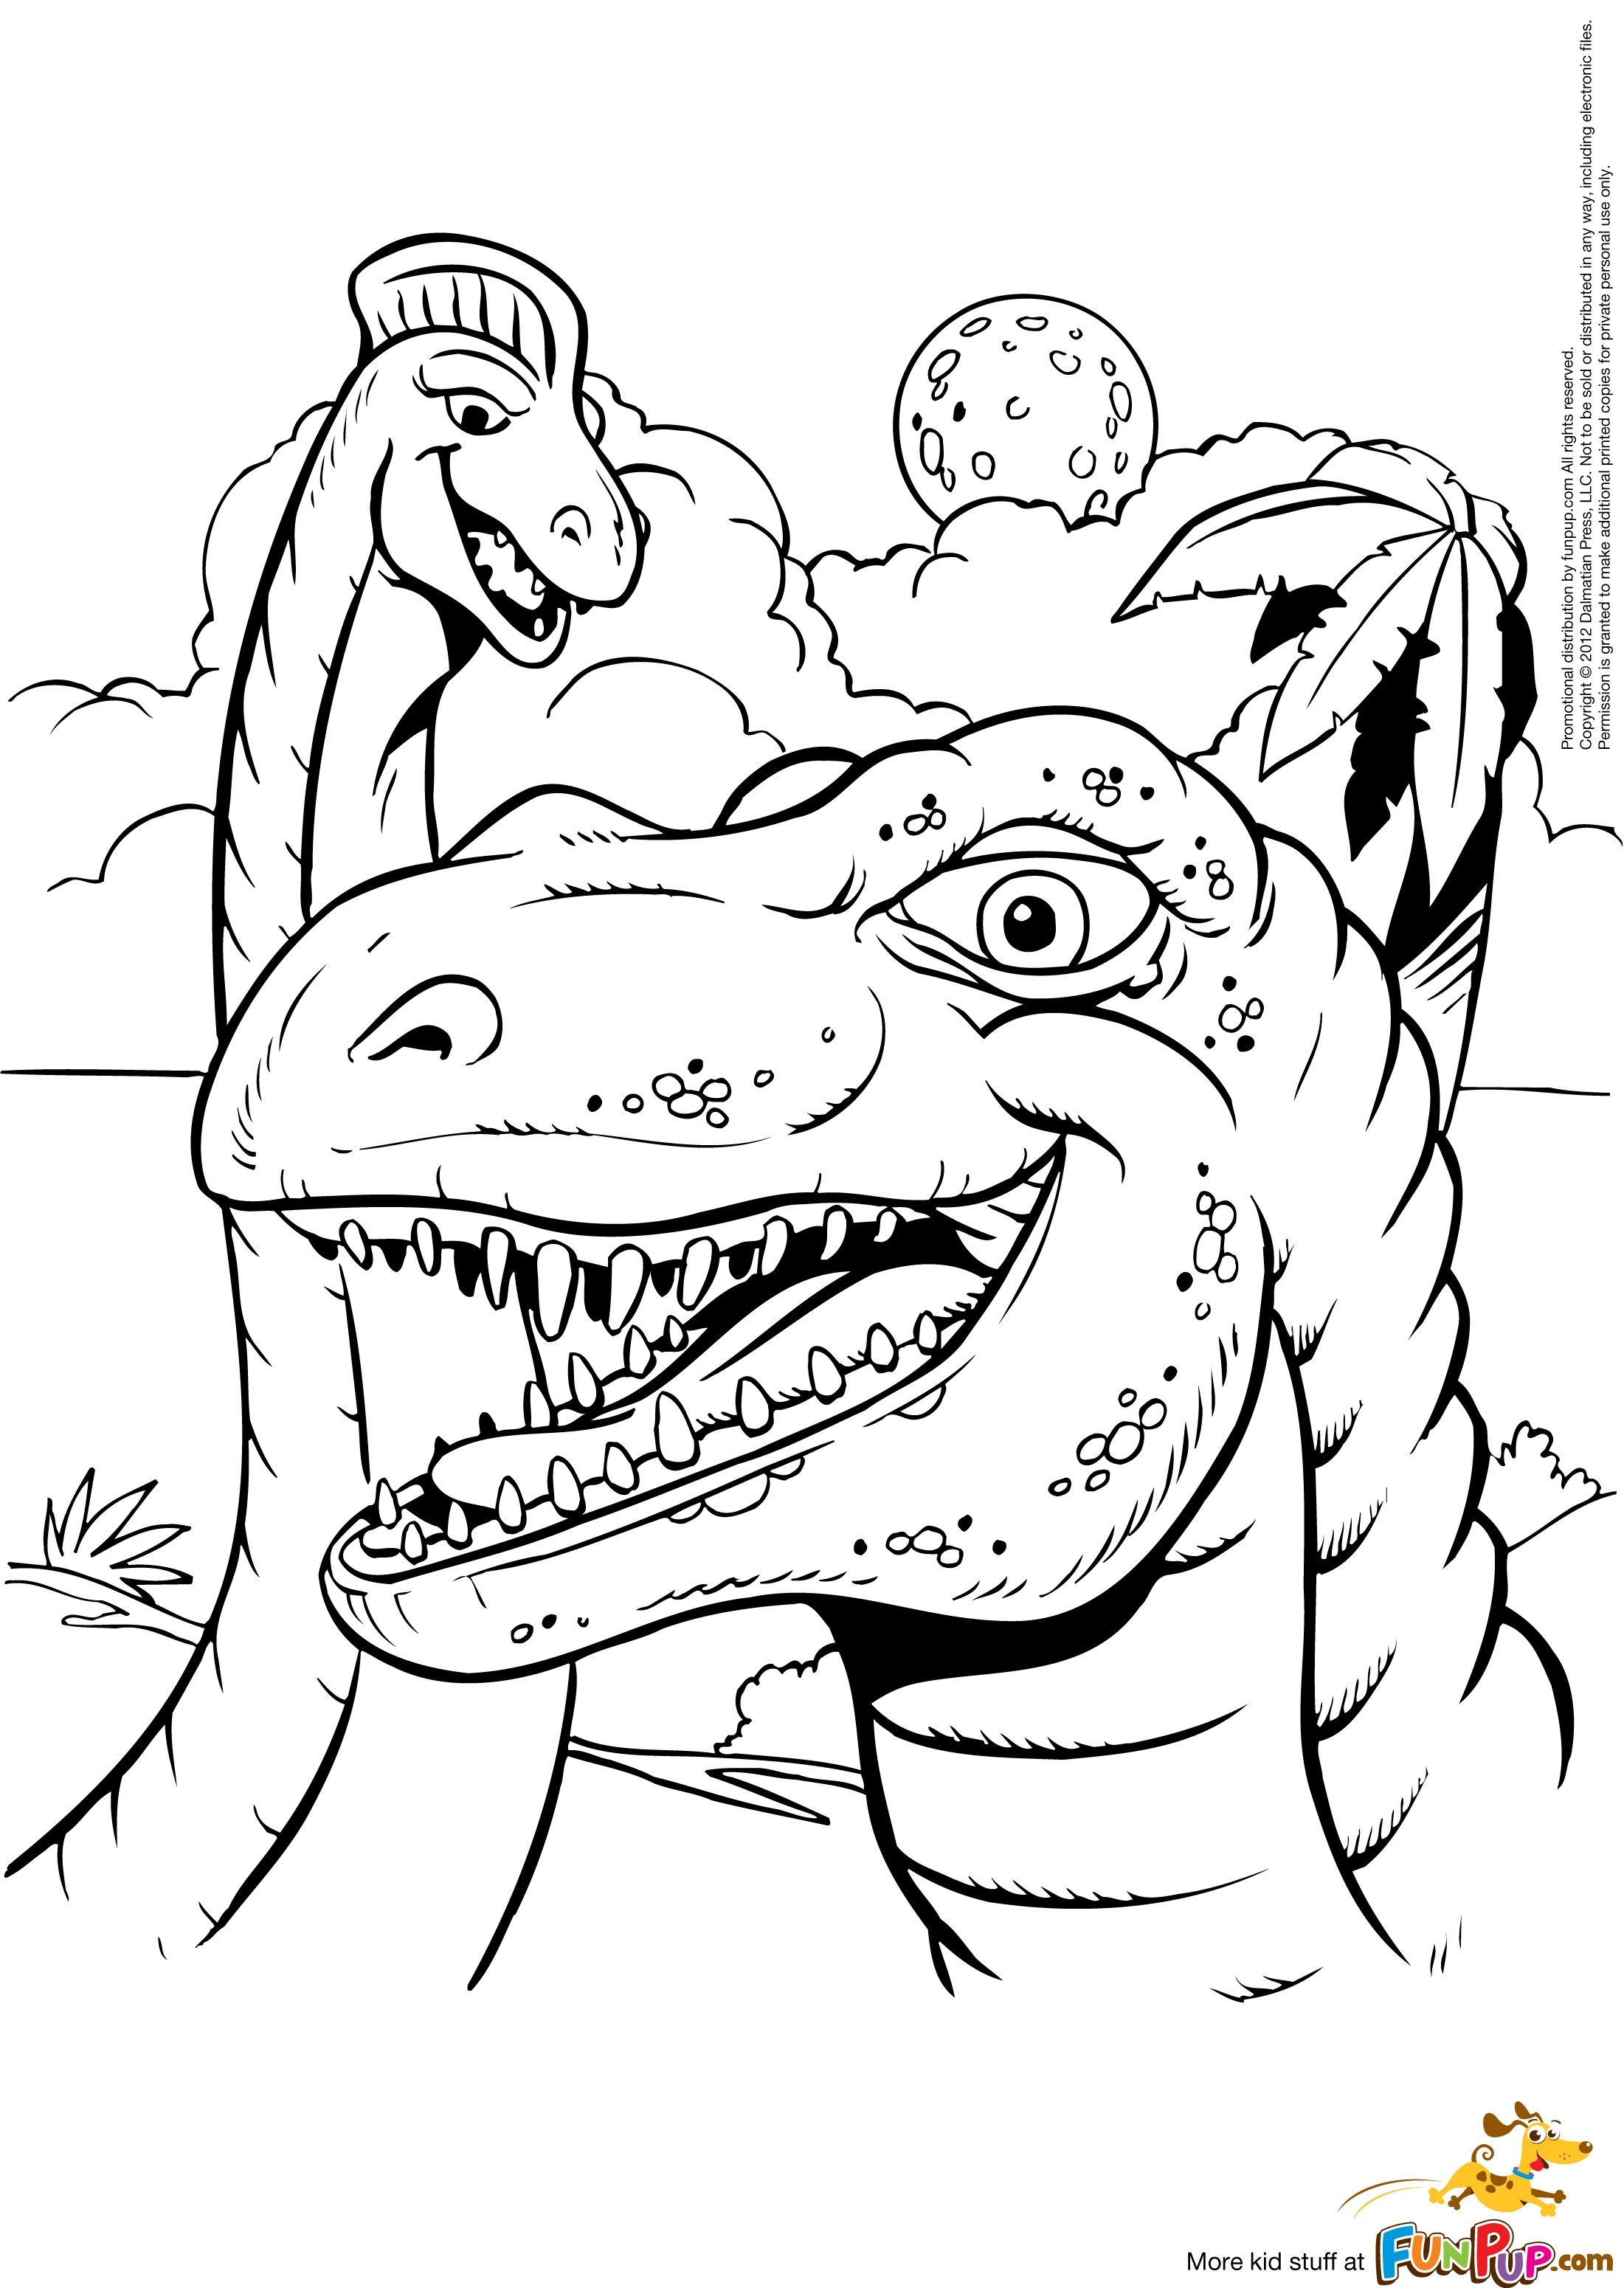 Argentinosaurus And T Rex 0 00 Dinosaur Coloring Pages